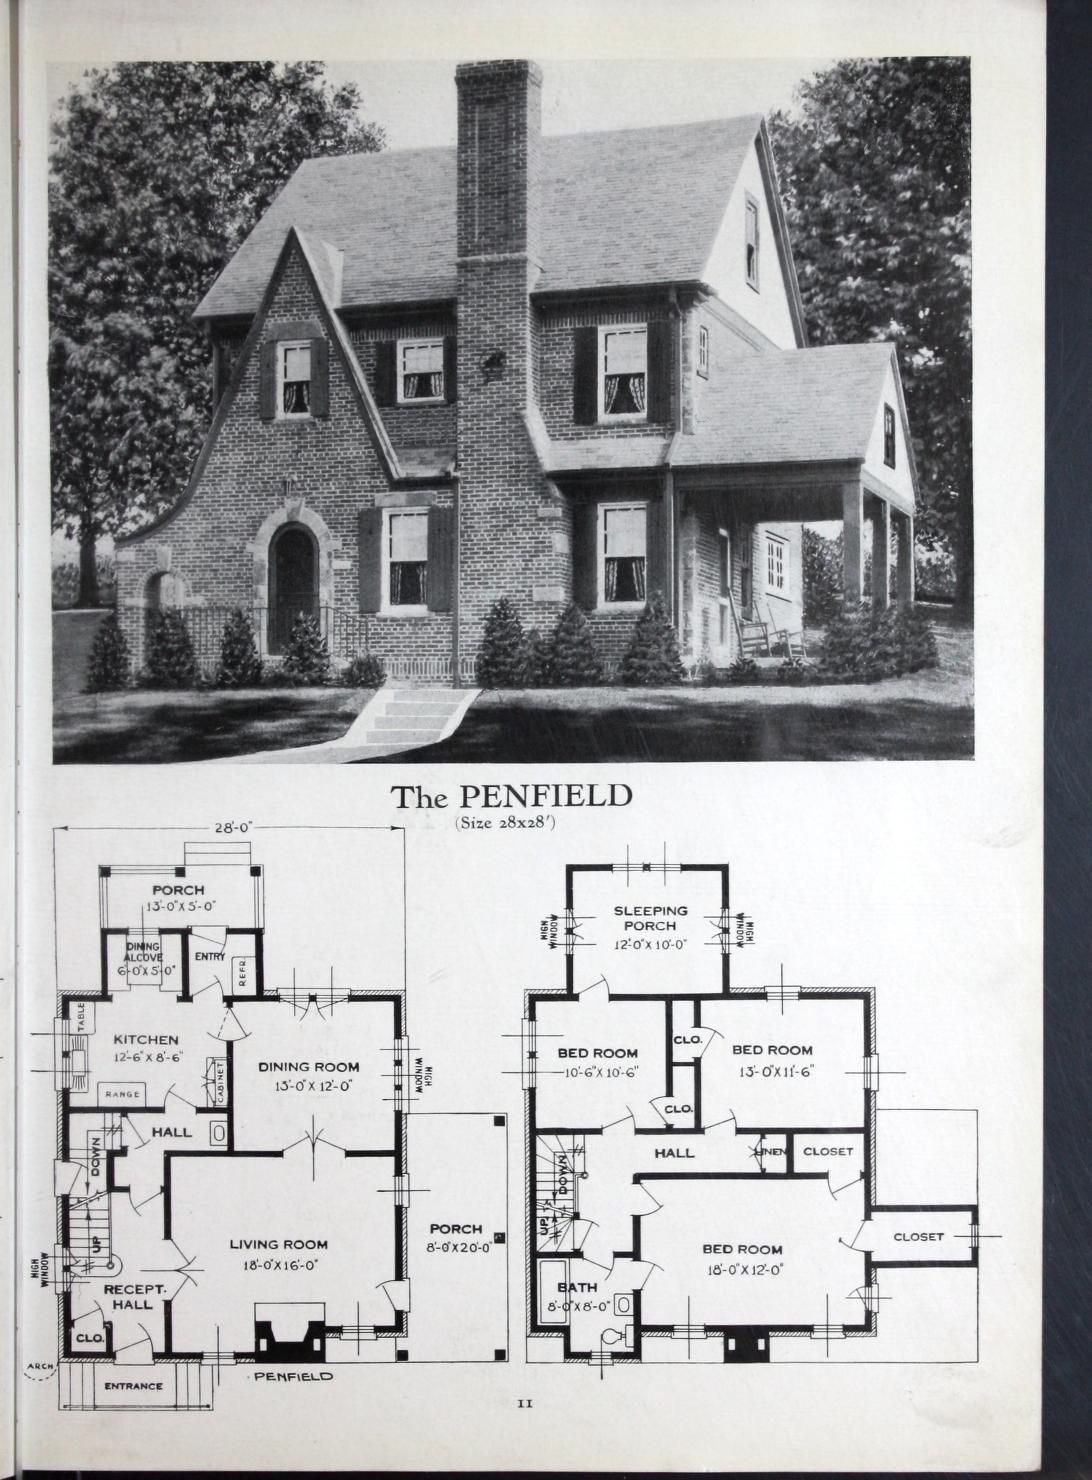 Homes of brick and stucco. | Home plan | Pinterest | Grundriss on brick ranch house plans, brick house with vinyl siding, brick and rock house plans, two story brick traditional house plans, brick french country house plans, 4-bedroom brick house plans, brick and cedar house plans, brick and stone house plans,